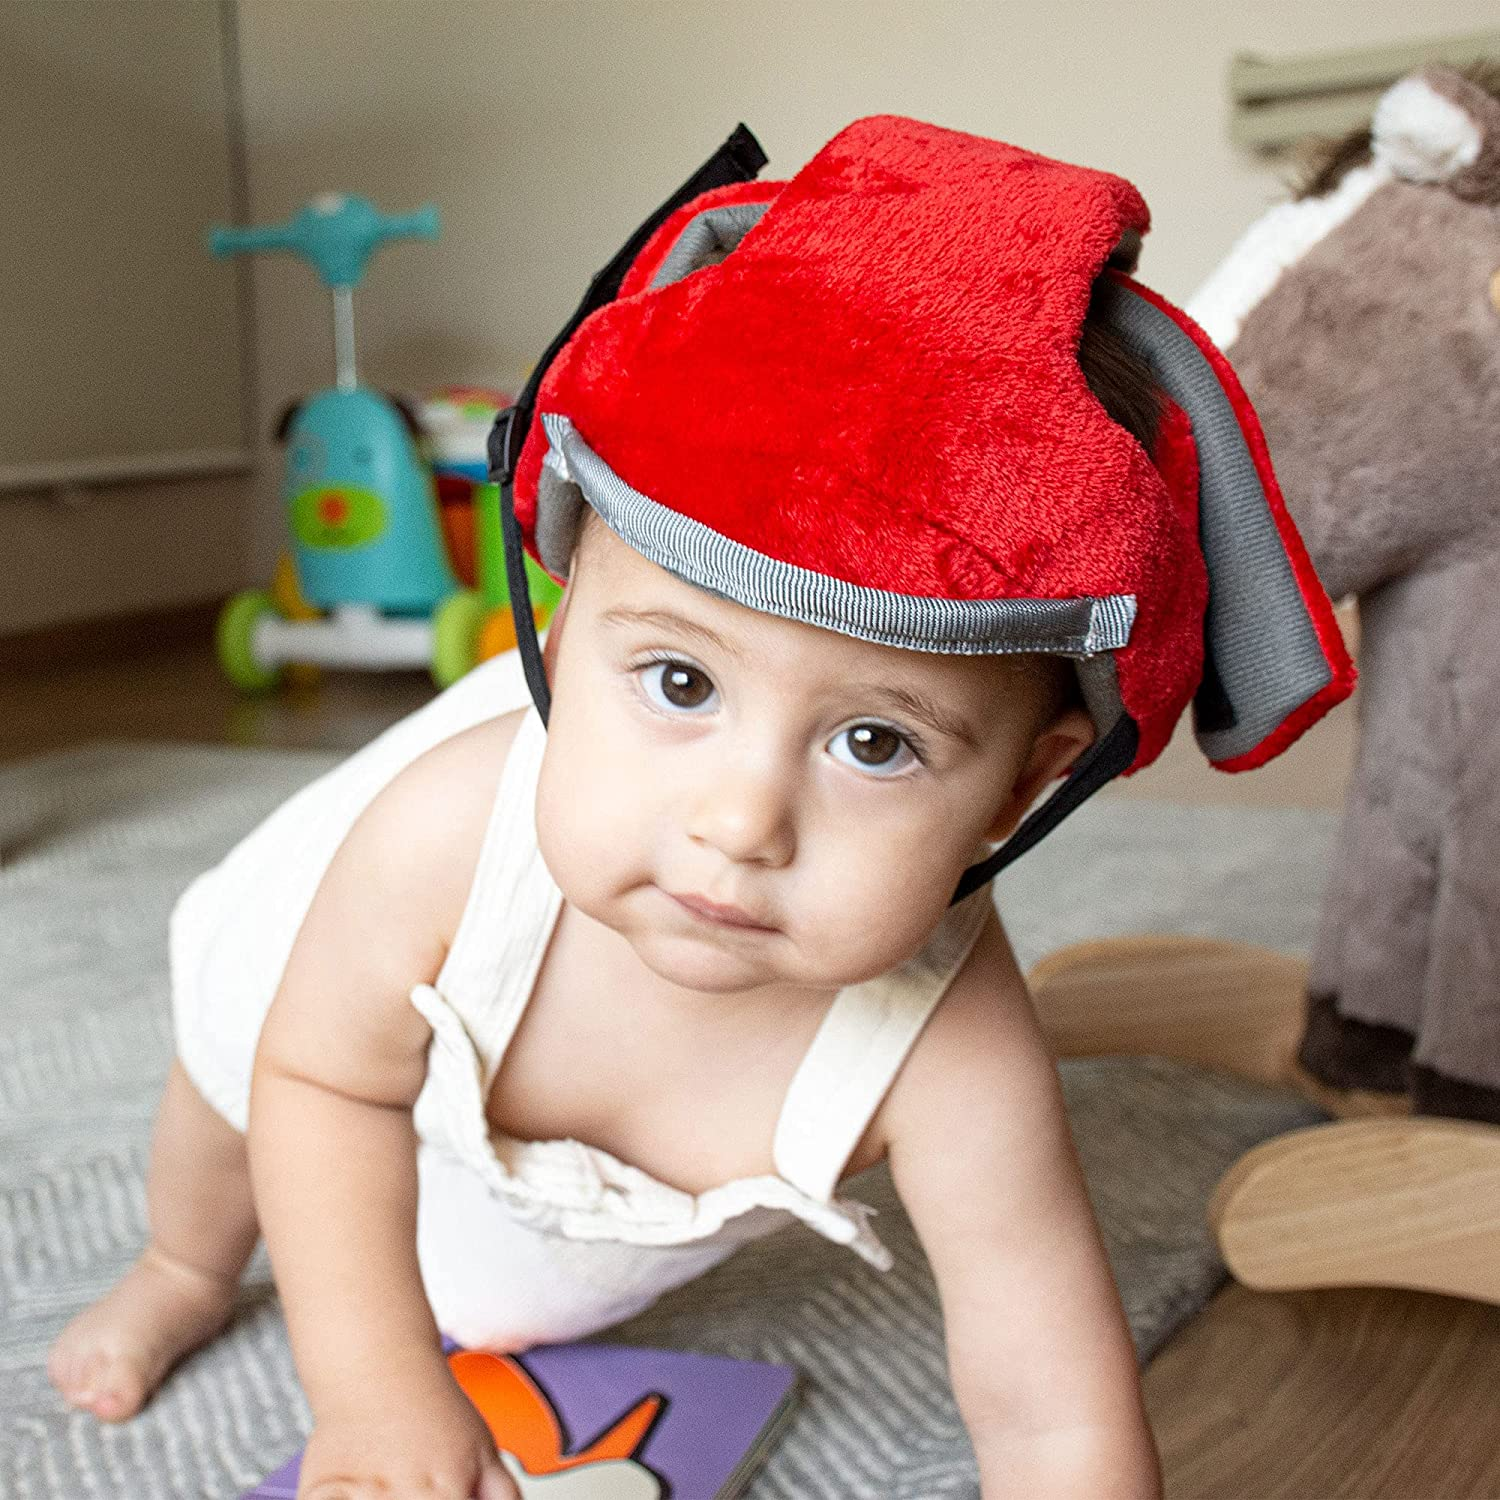 INFANTORY | Baby Helmet for Protection and Safety - Adjustable, Shockproof Foam